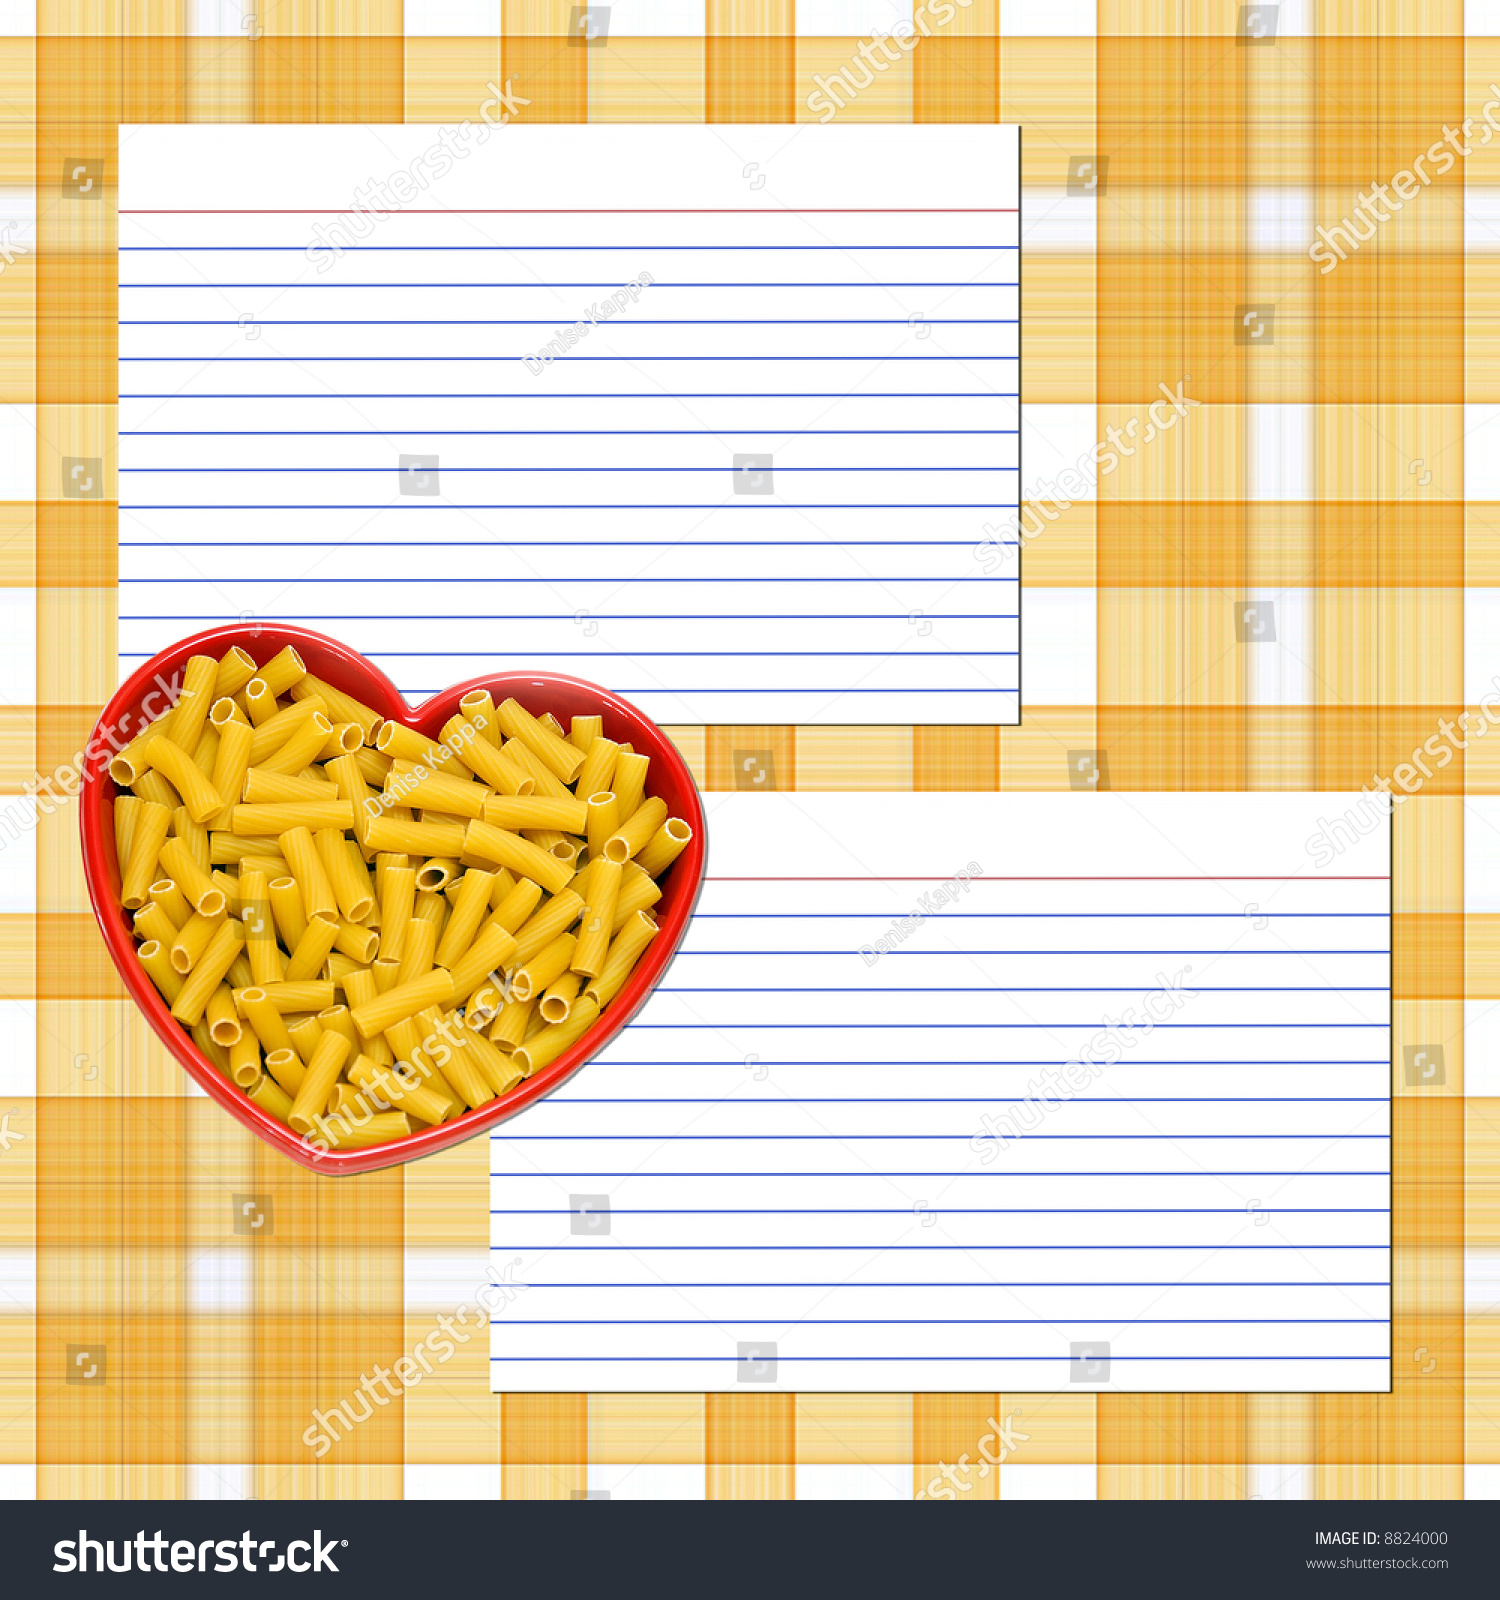 Recipe layout pasta recipe cards heart stock photo royalty free a recipe layout for pasta recipe cards heart dish of pasta plain tile forumfinder Choice Image